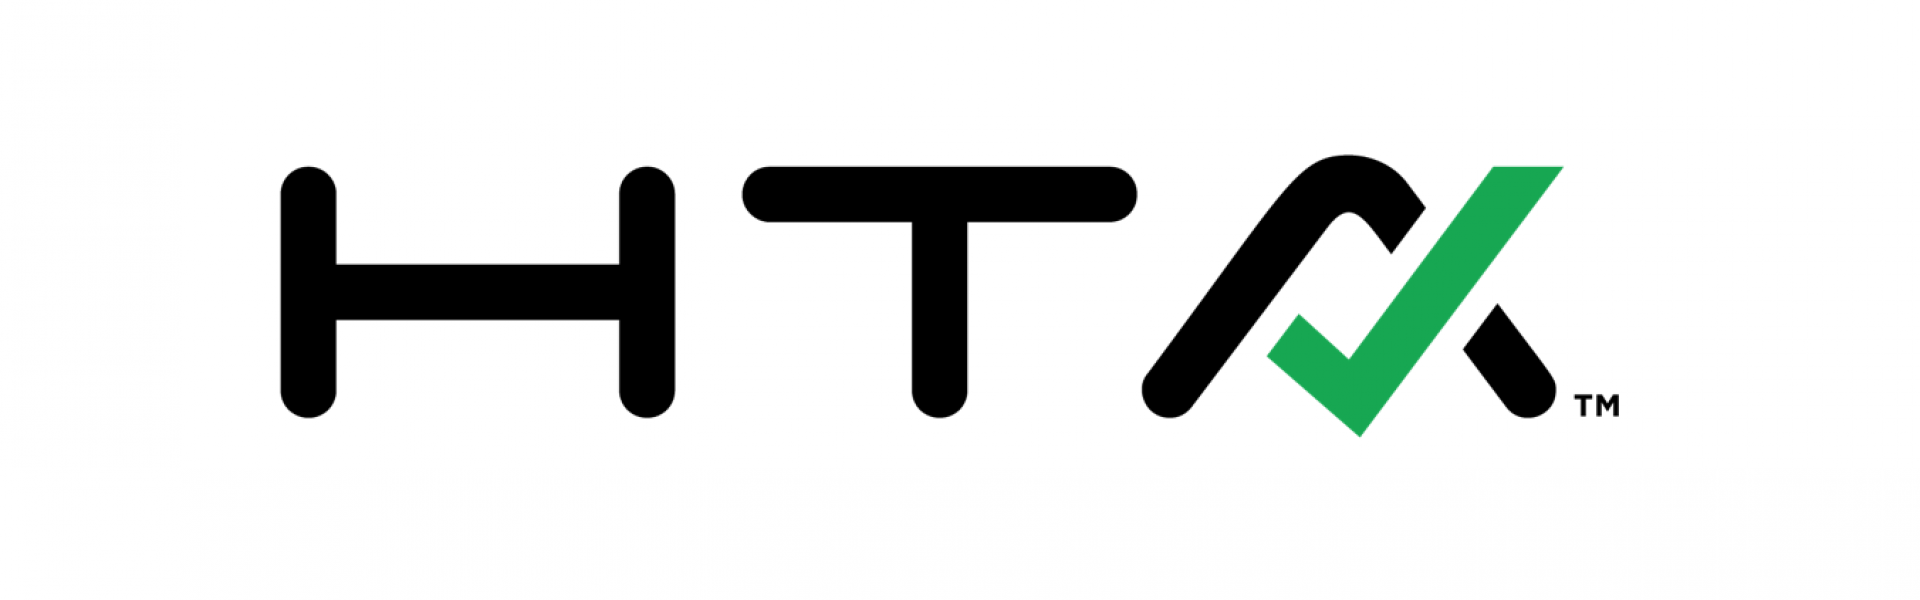 HTA Certification Badges Help D-Tools Users Win Business - January 2018